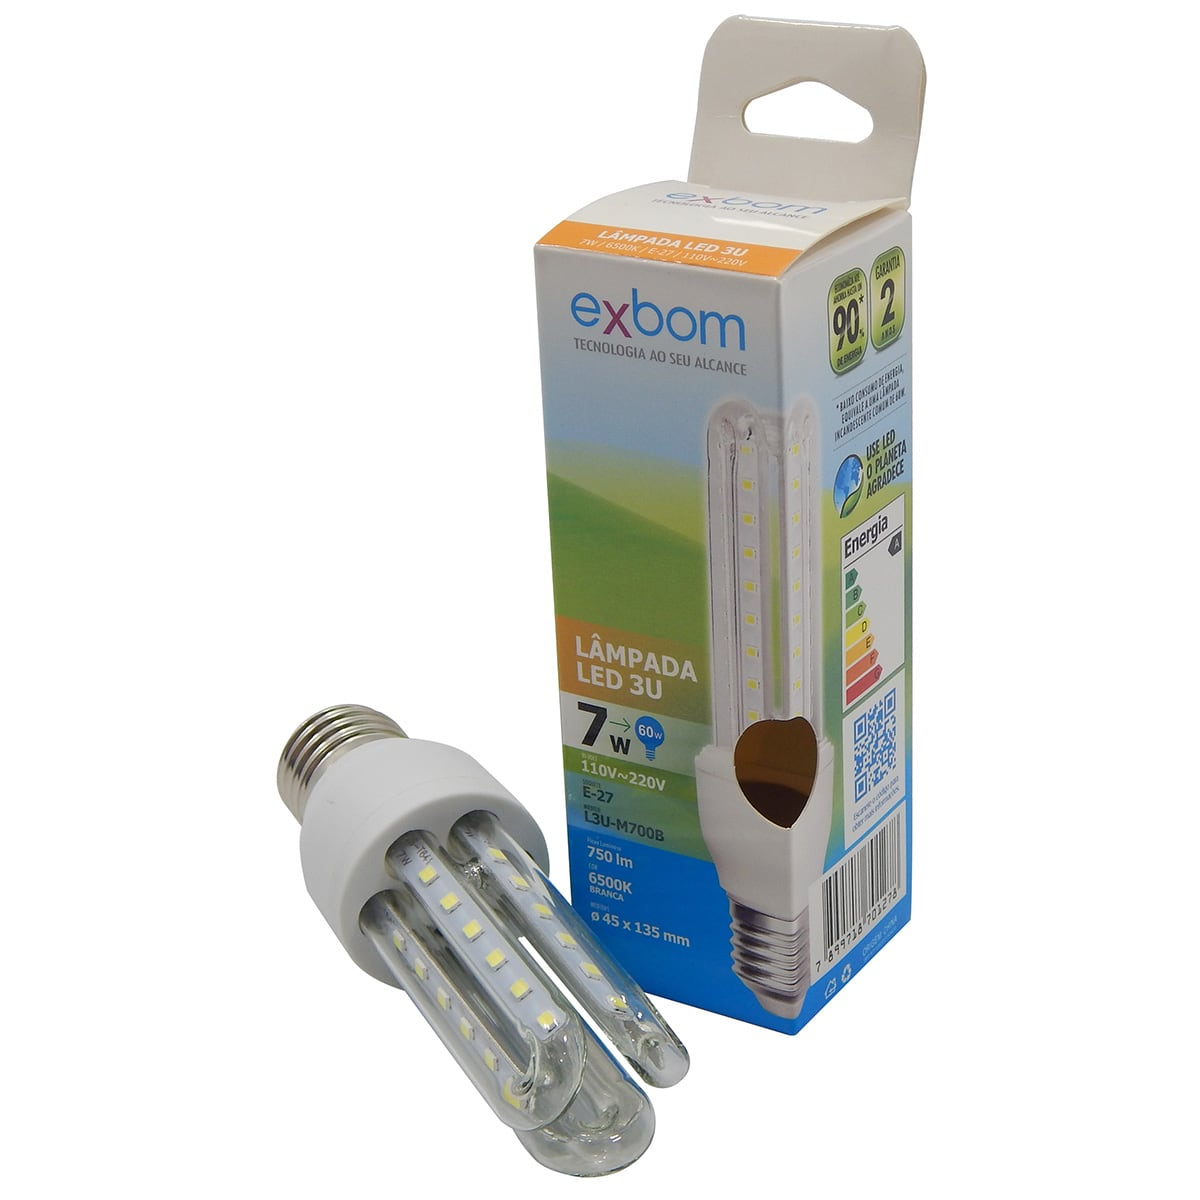 Lampada led 3u 7w e27 6500k exbom l3u m700b apolum for Lampade e27 a led